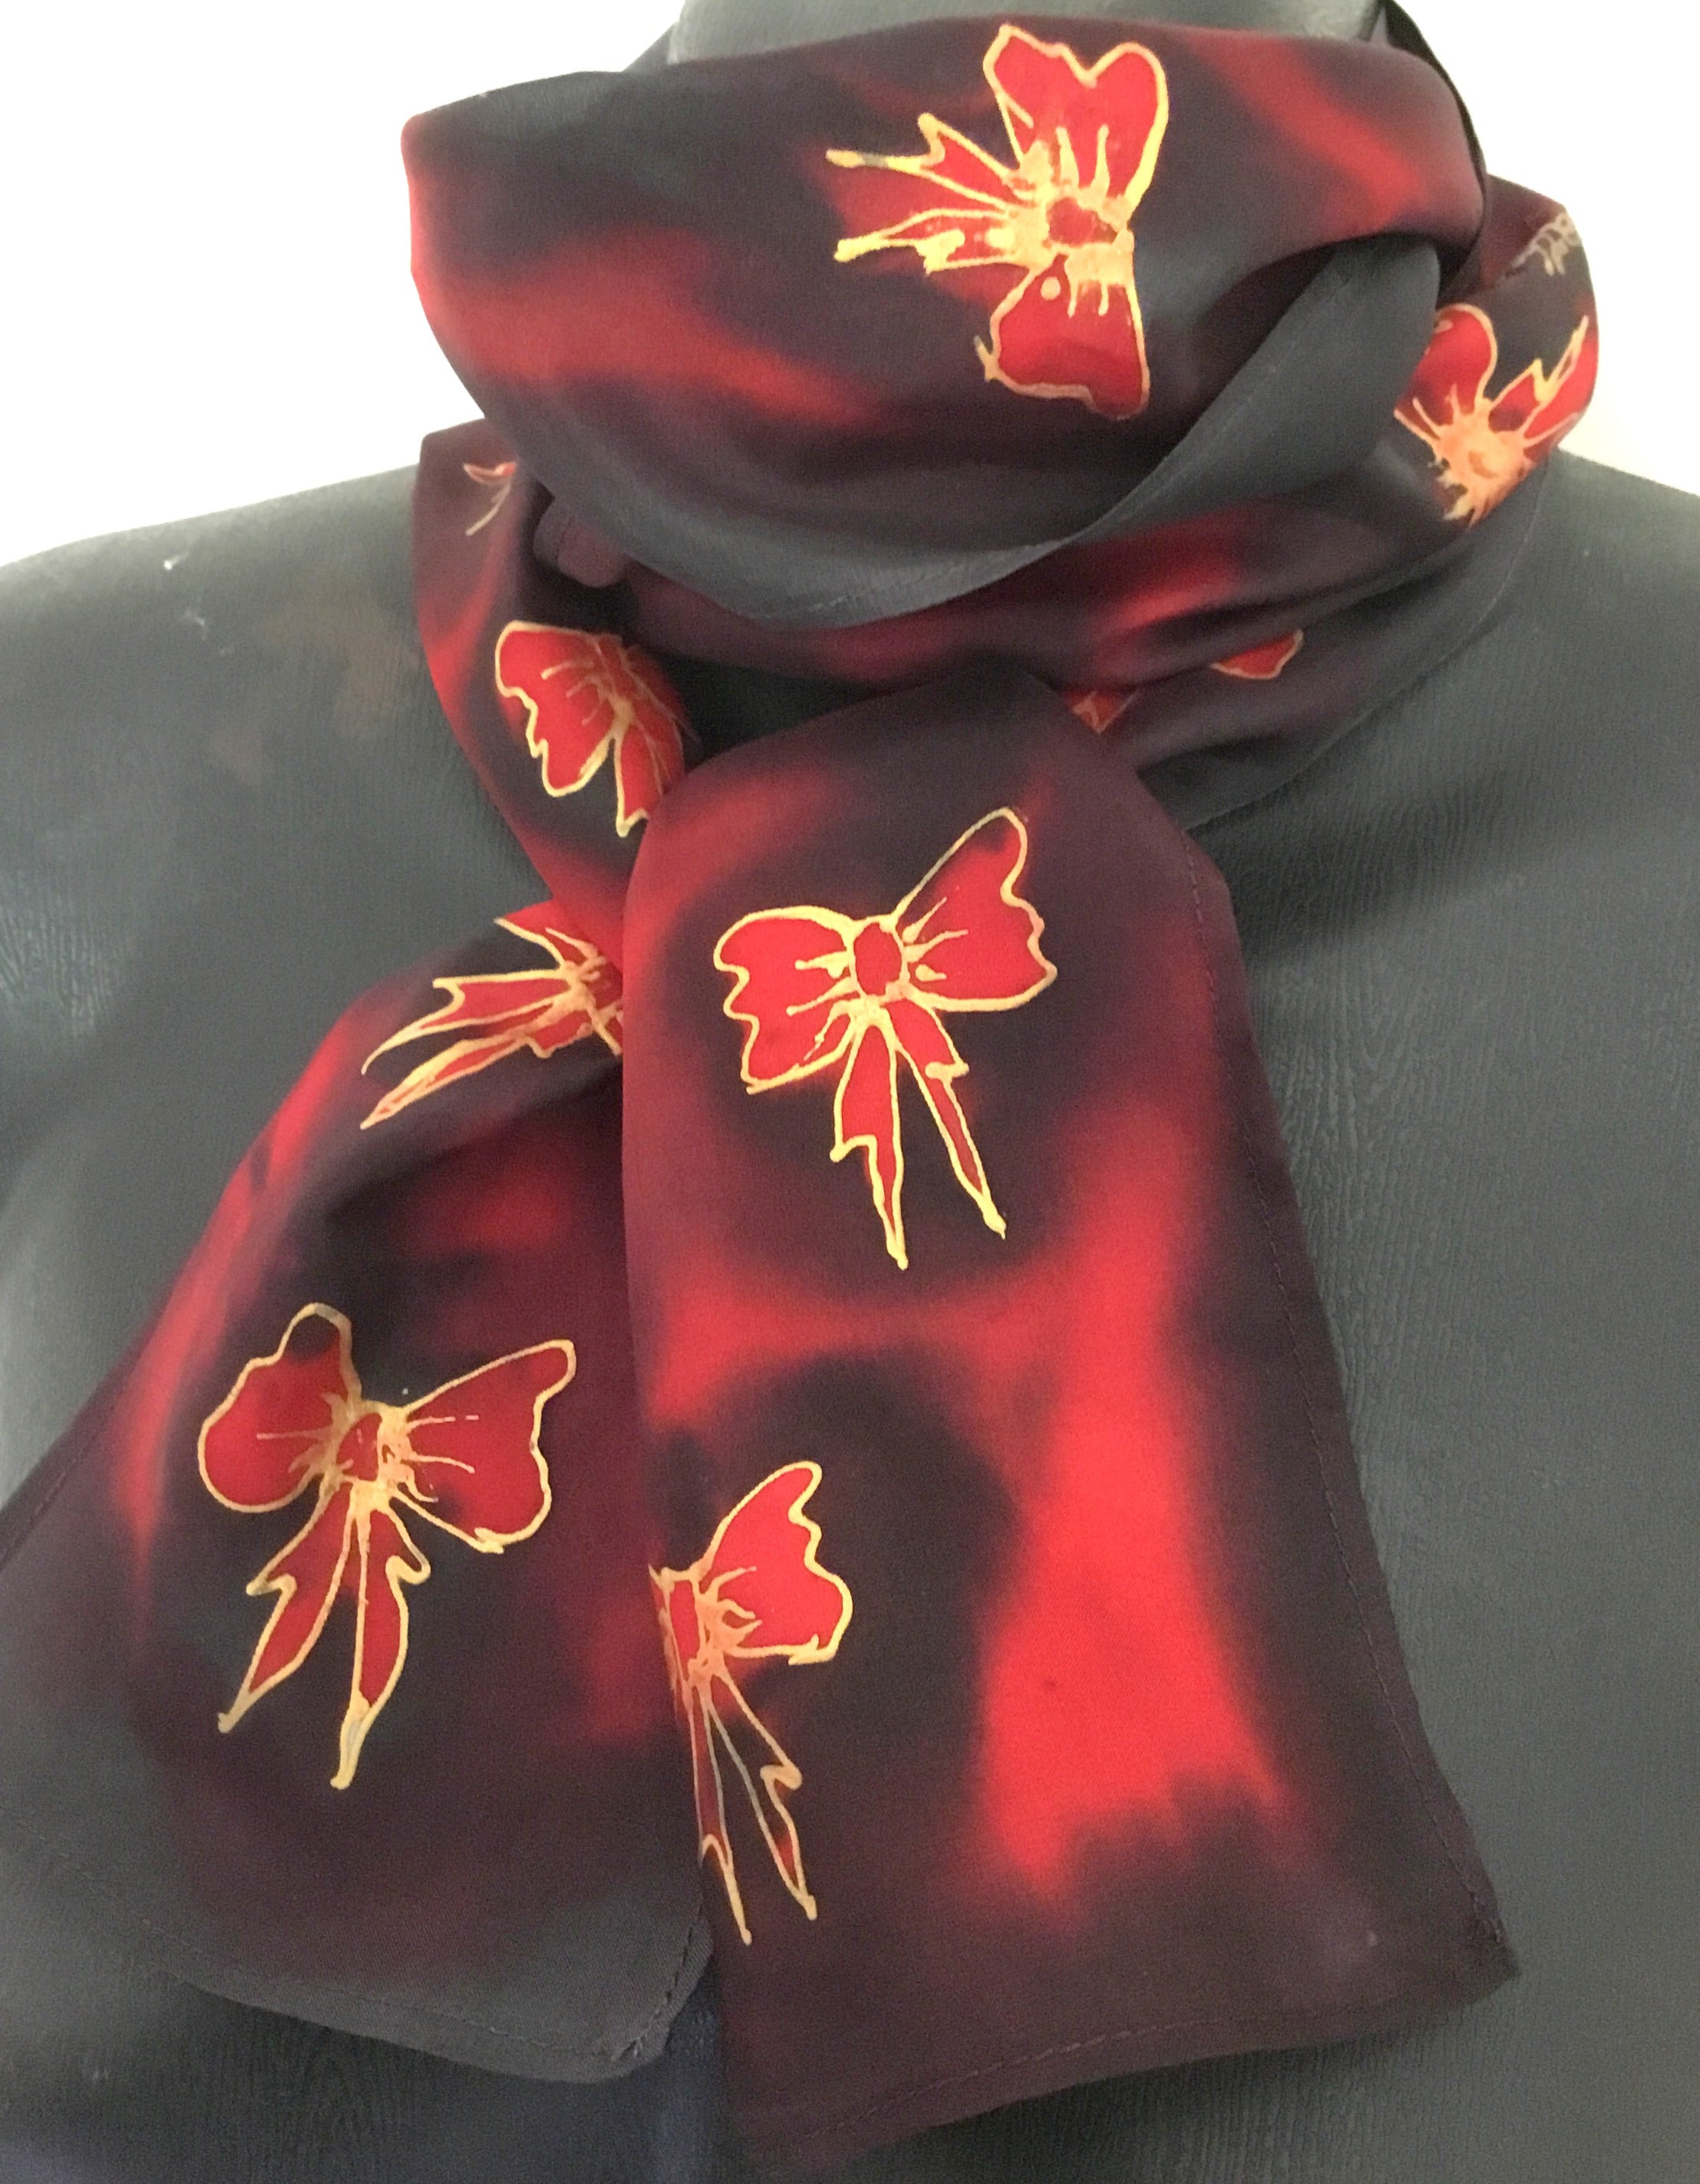 Bows Skinny - Hand painted Silk Scarf - Satherley Silks NZ